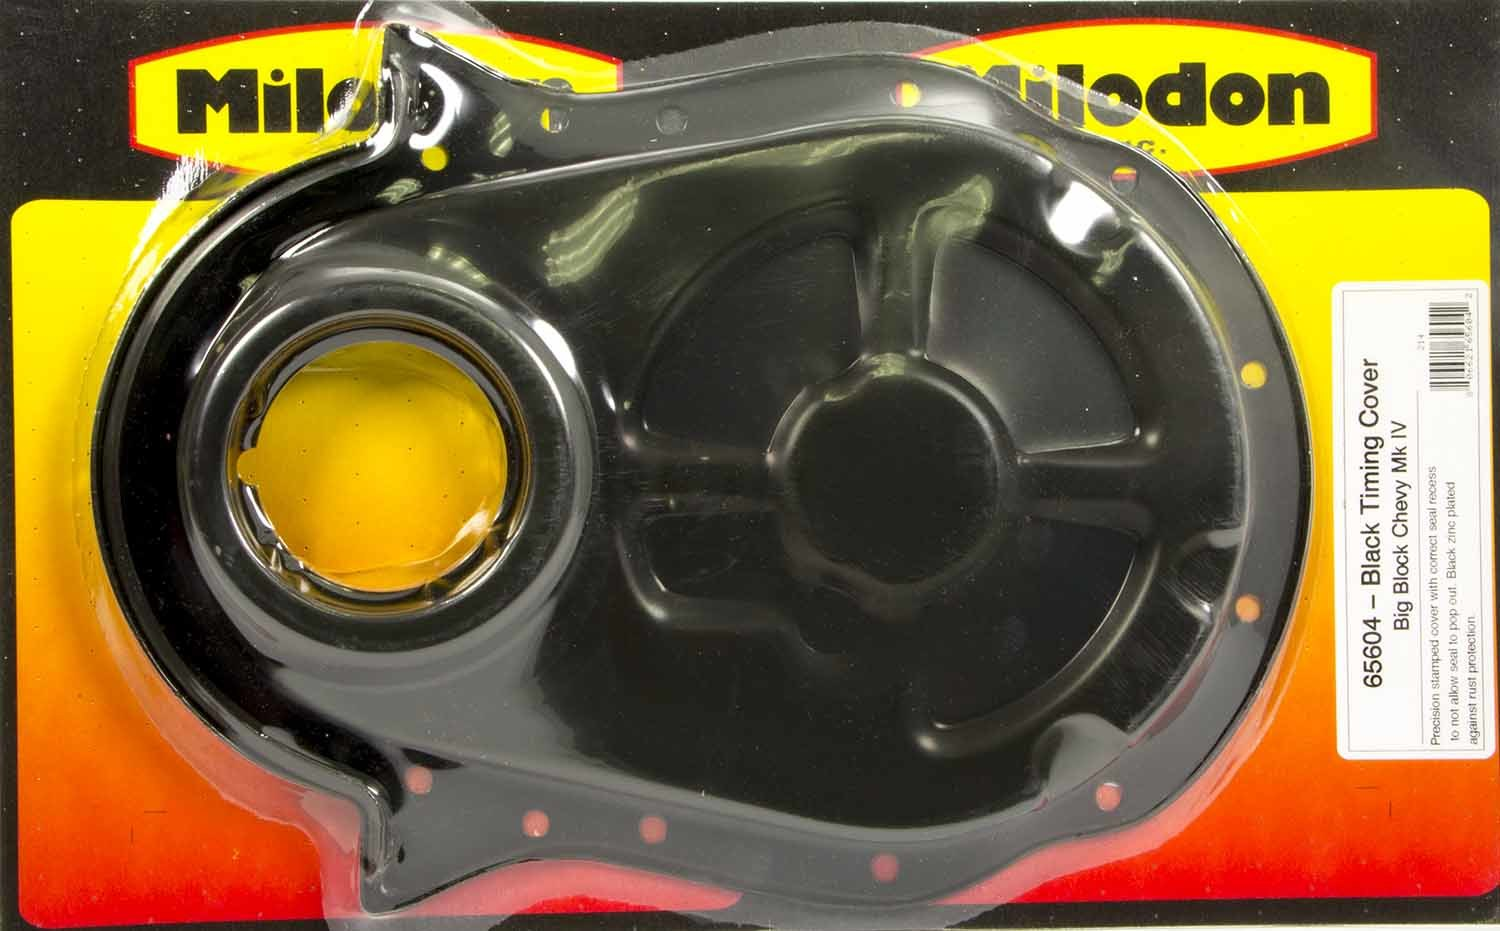 Milodon 65604 Timing Cover, 1 Piece, Steel, Black Oxide, Big Block Chevy, Each